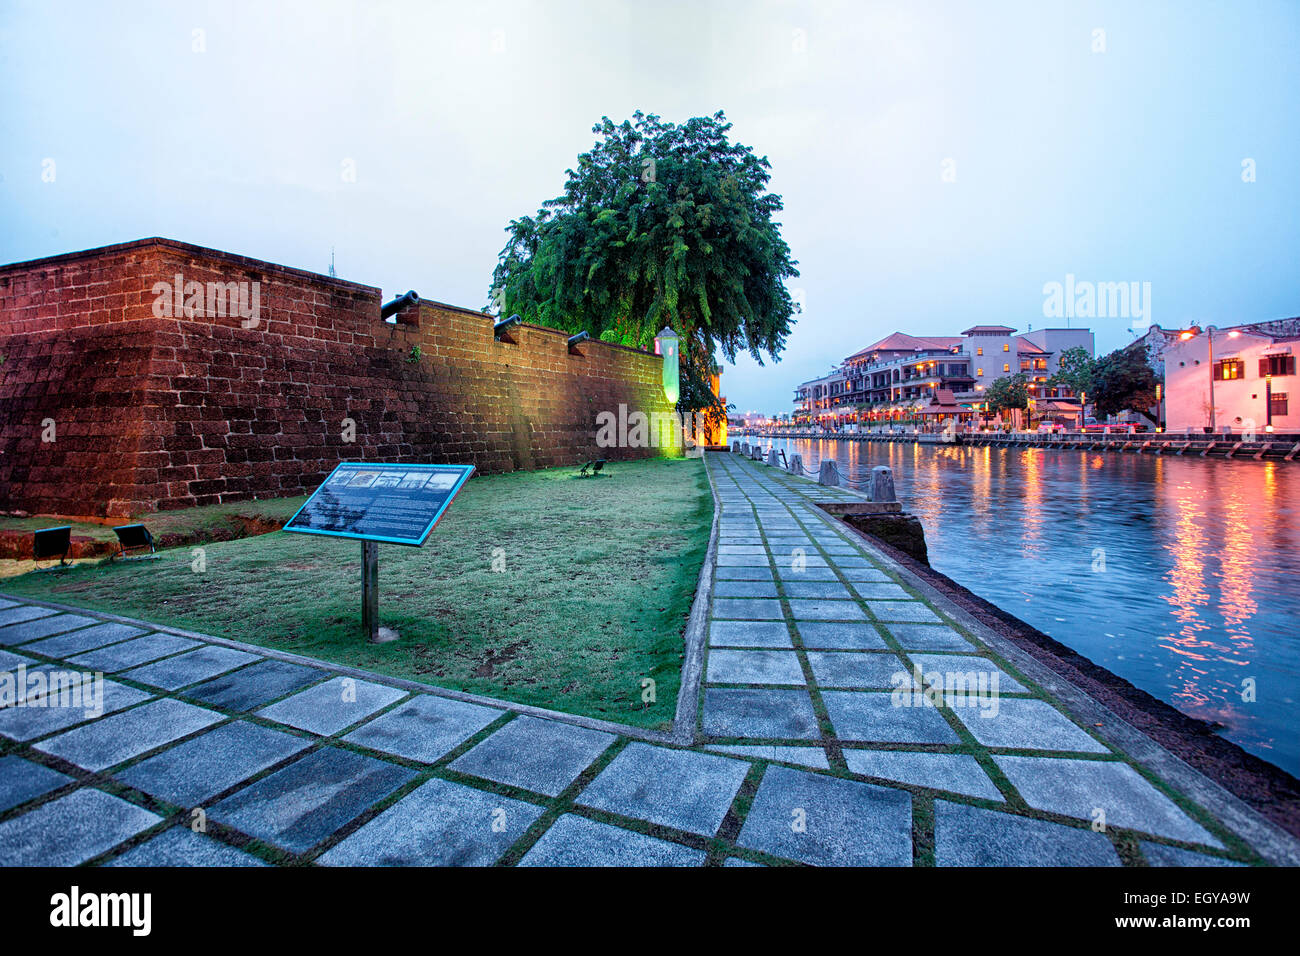 Malaysia, Malacca City, Reconstruction of the watchtower by the riverside - Stock Image